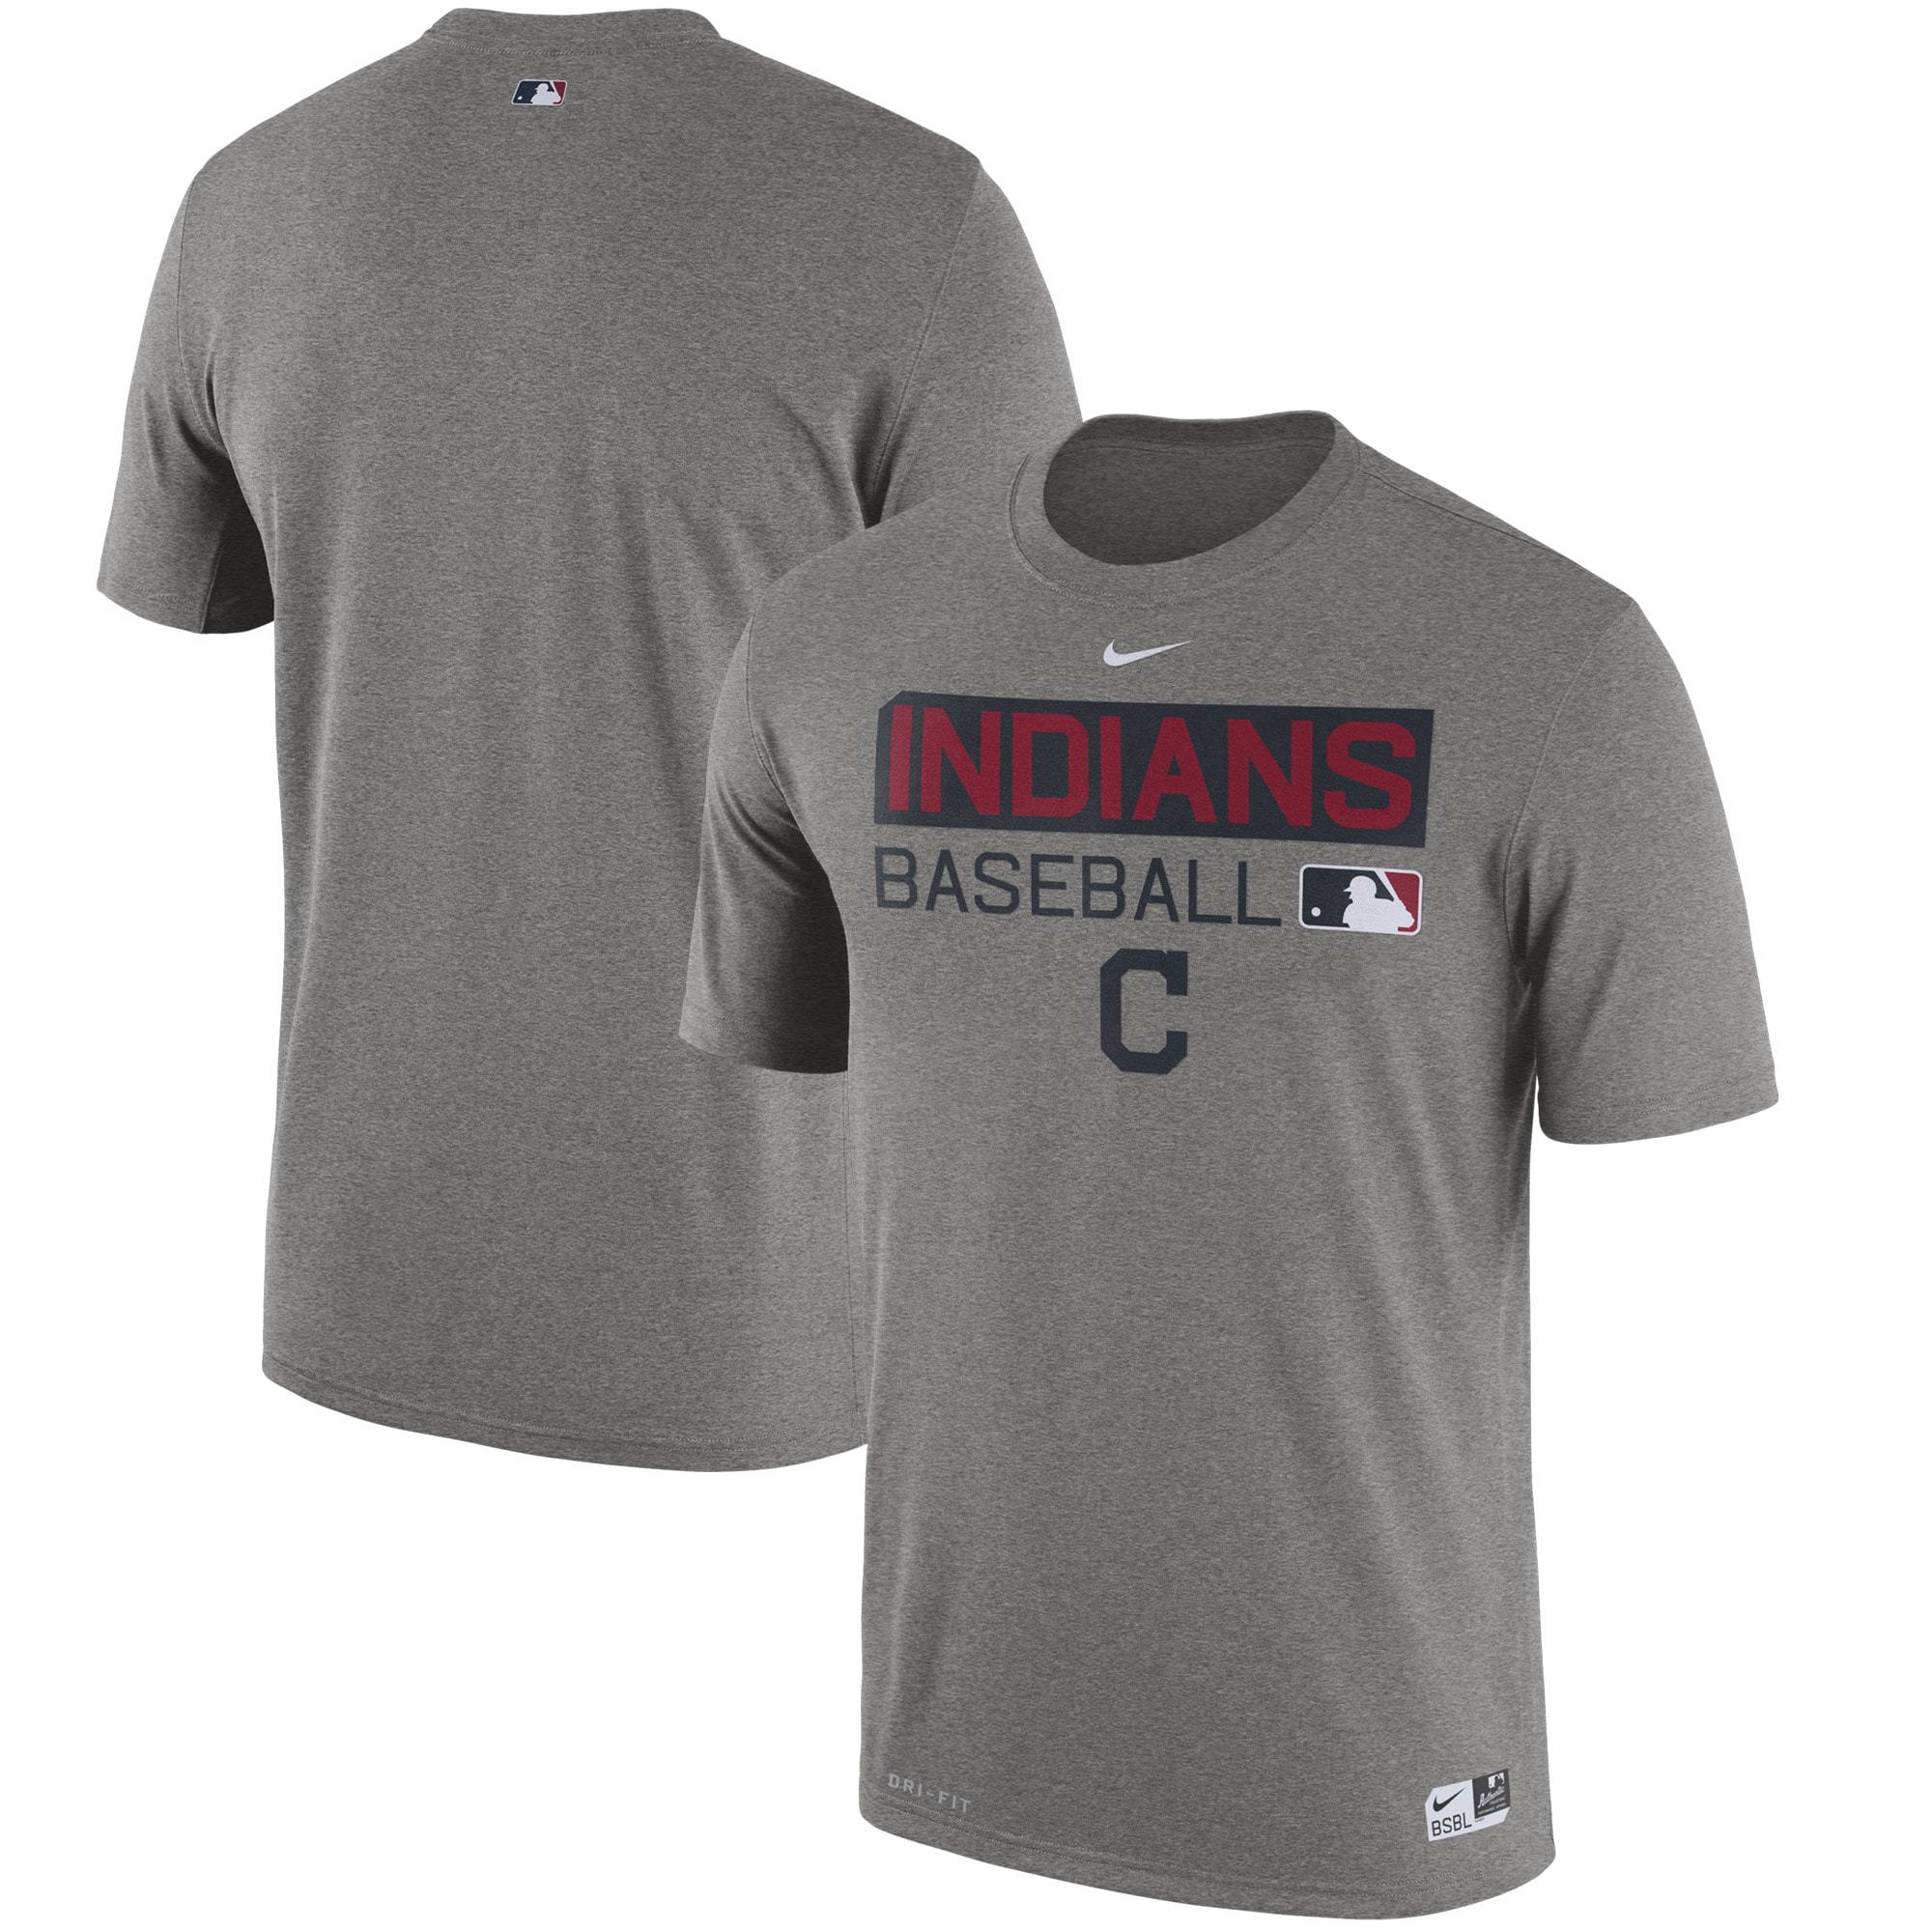 Cleveland Indians Nike Authentic Collection Legend Team Issue Performance T-Shirt - Heathered Gray